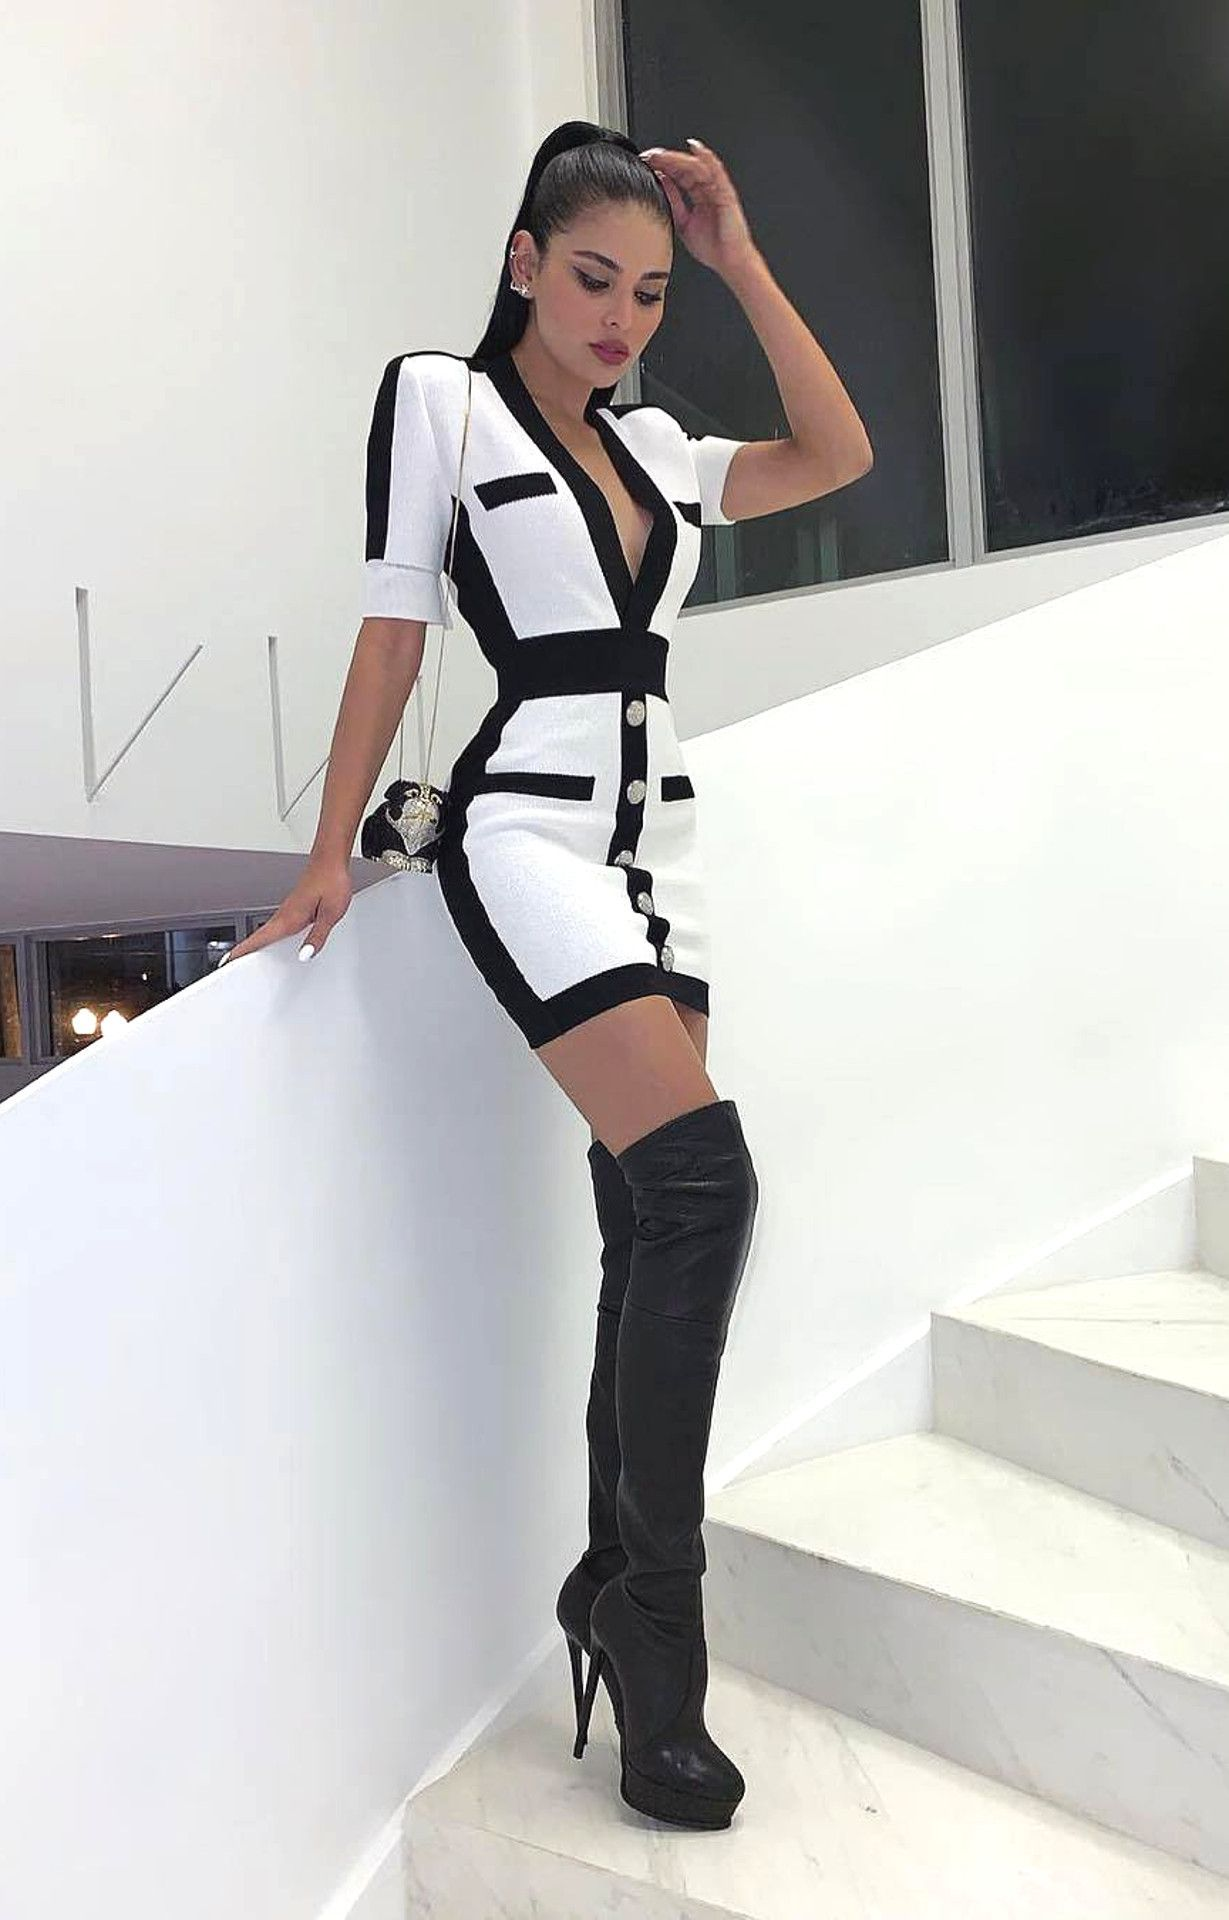 246abf159c56a Rubik's Skirts & Dresses   I look good and I know it in 2019